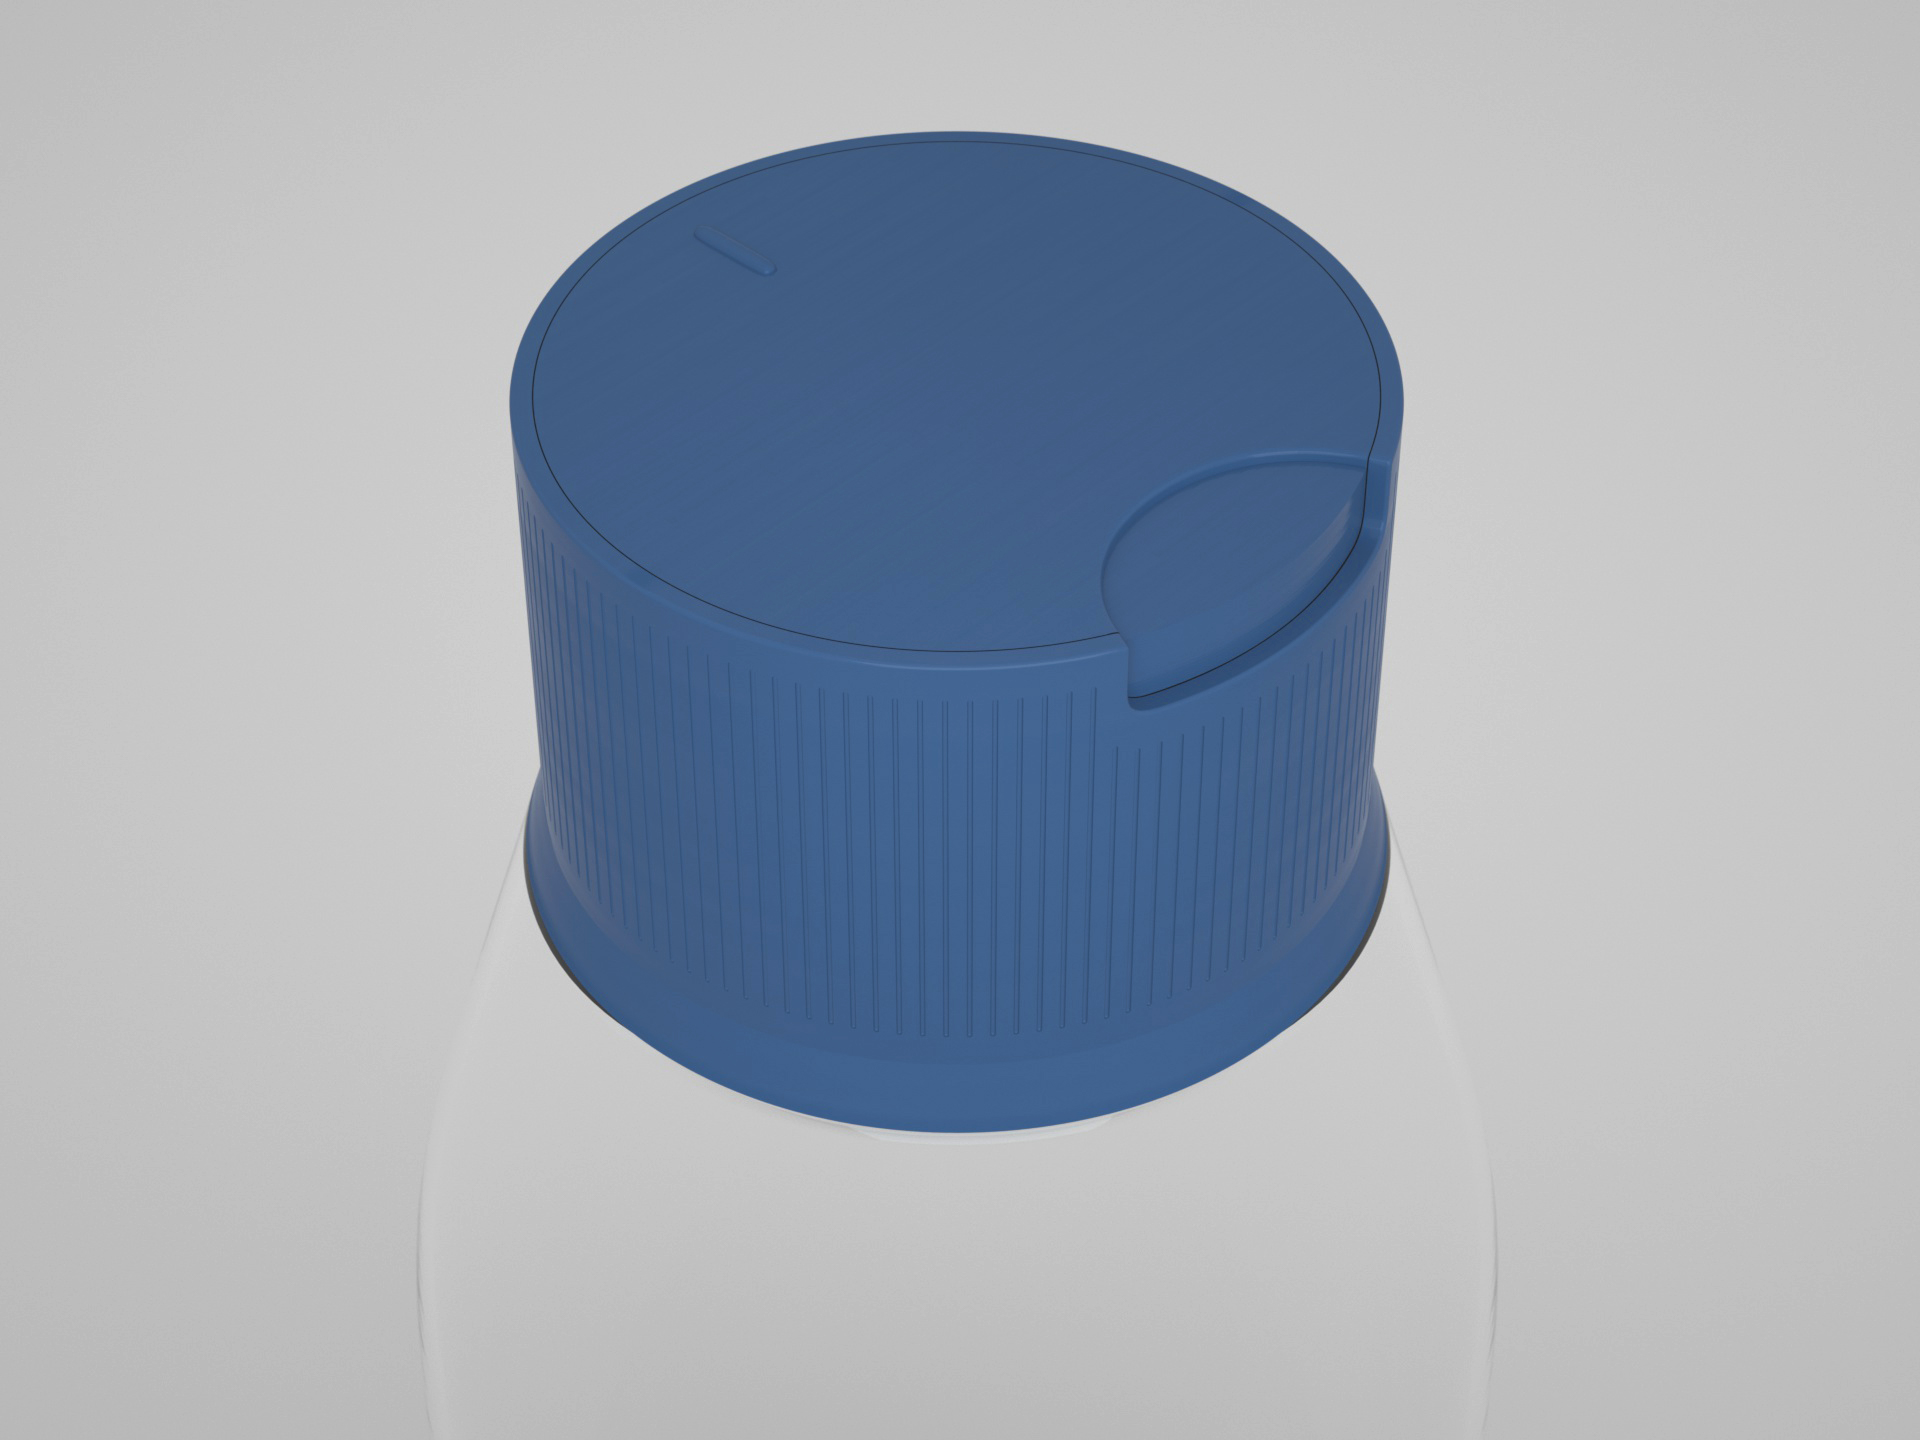 Re-fillable_Bottle_Rhino_PSD_Top_v001_01.jpg